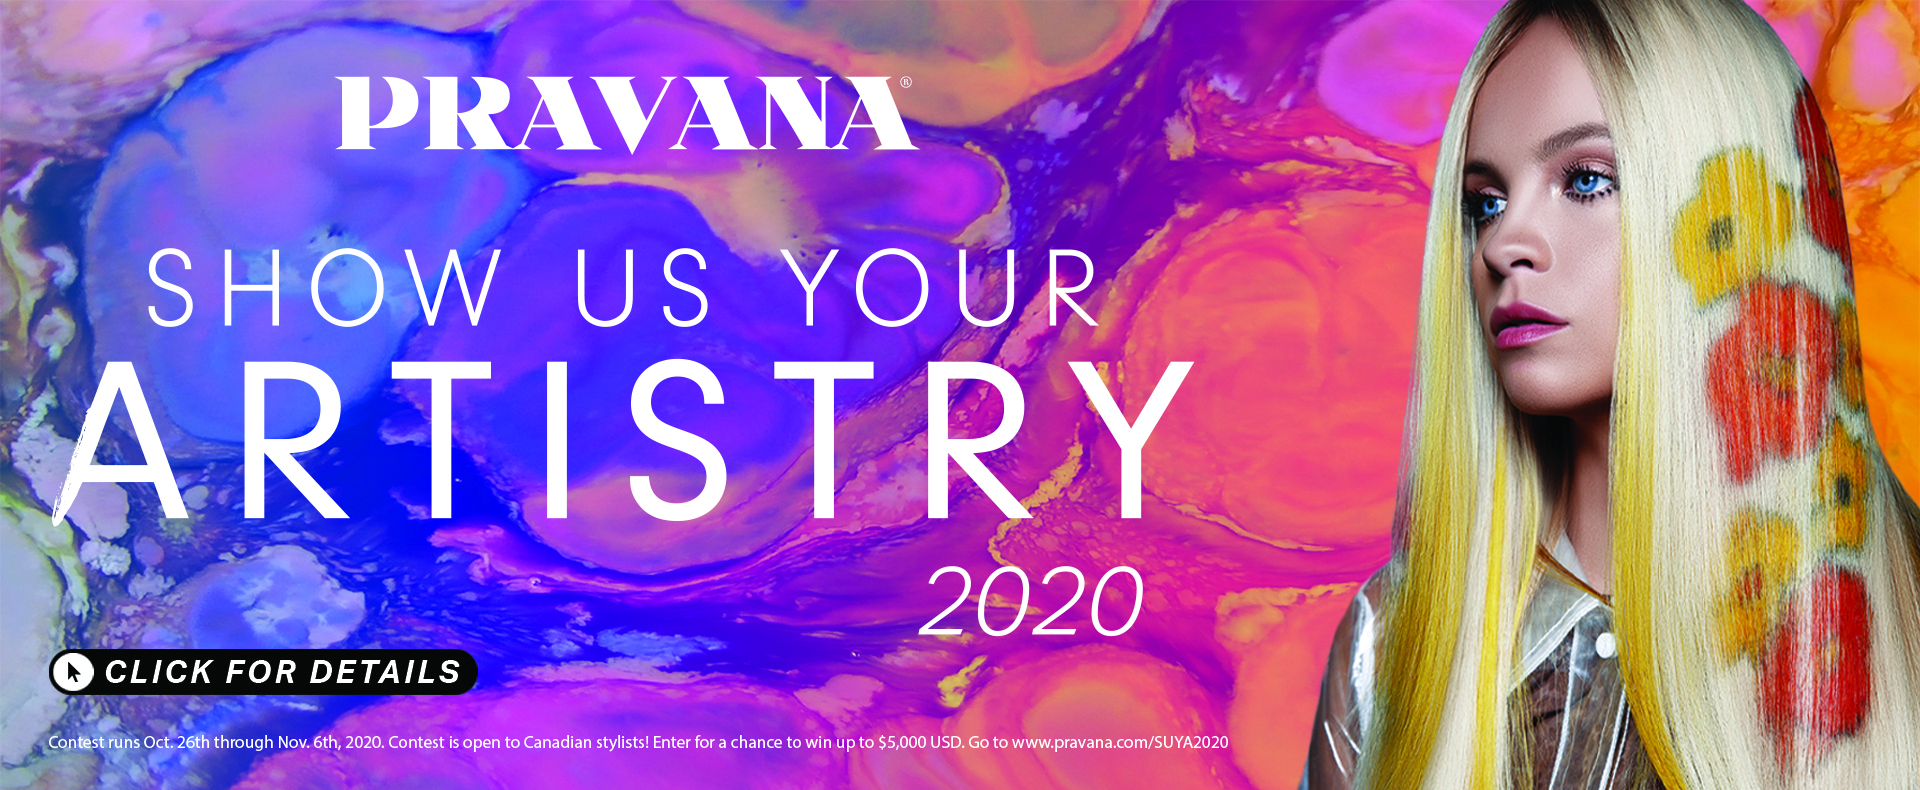 Pravana - Show Us Your Artistry!